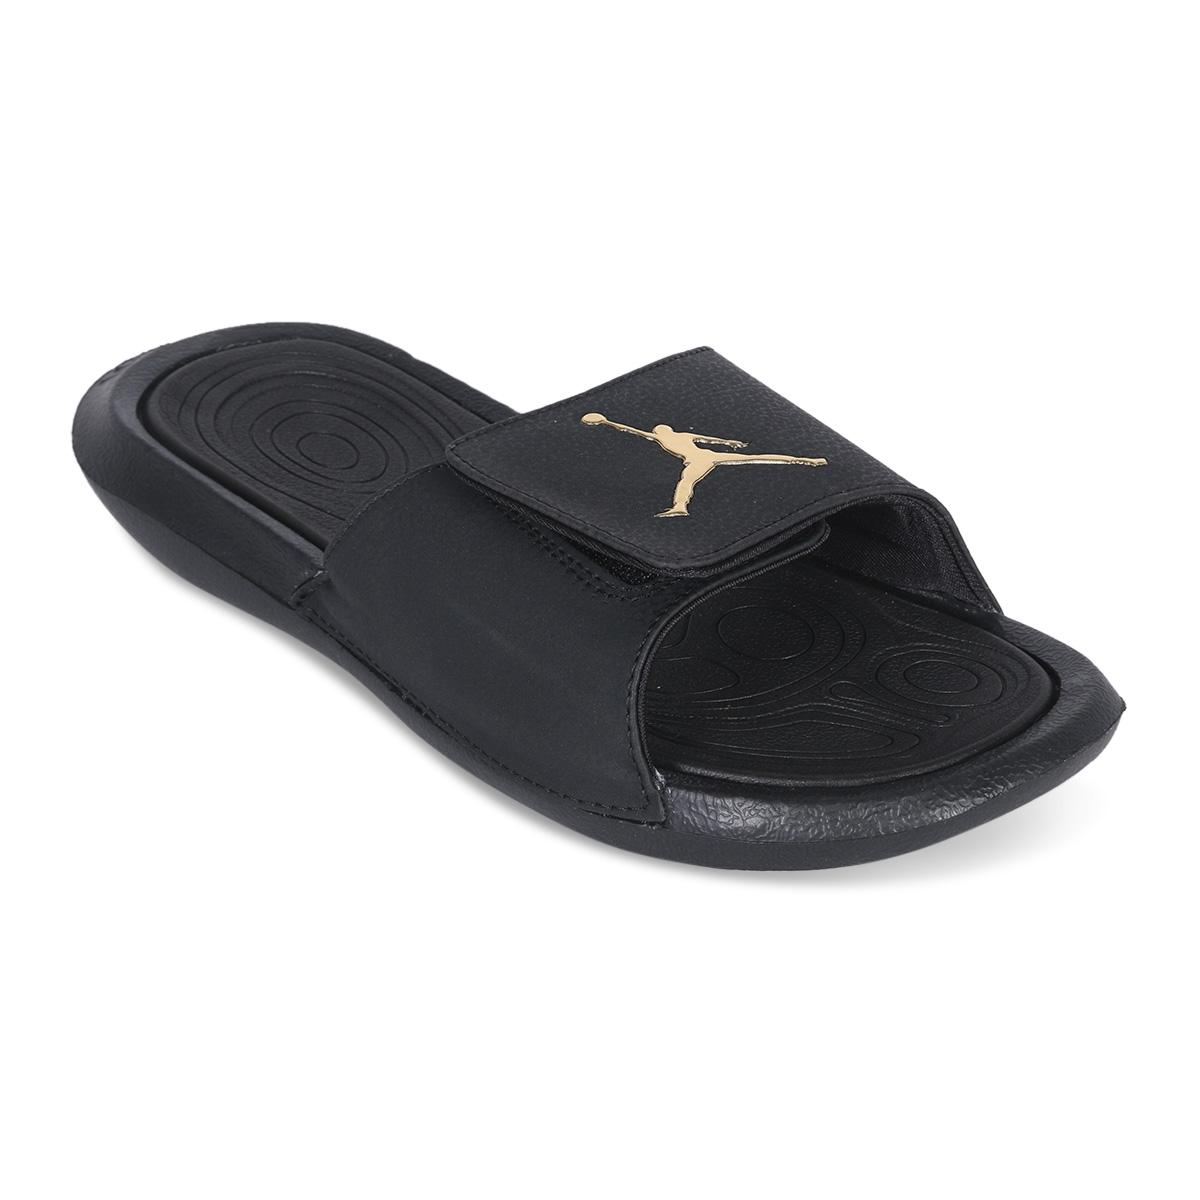 d5dc26687 Men s Loafers In Bangladesh At Best Price - Daraz.com.bd